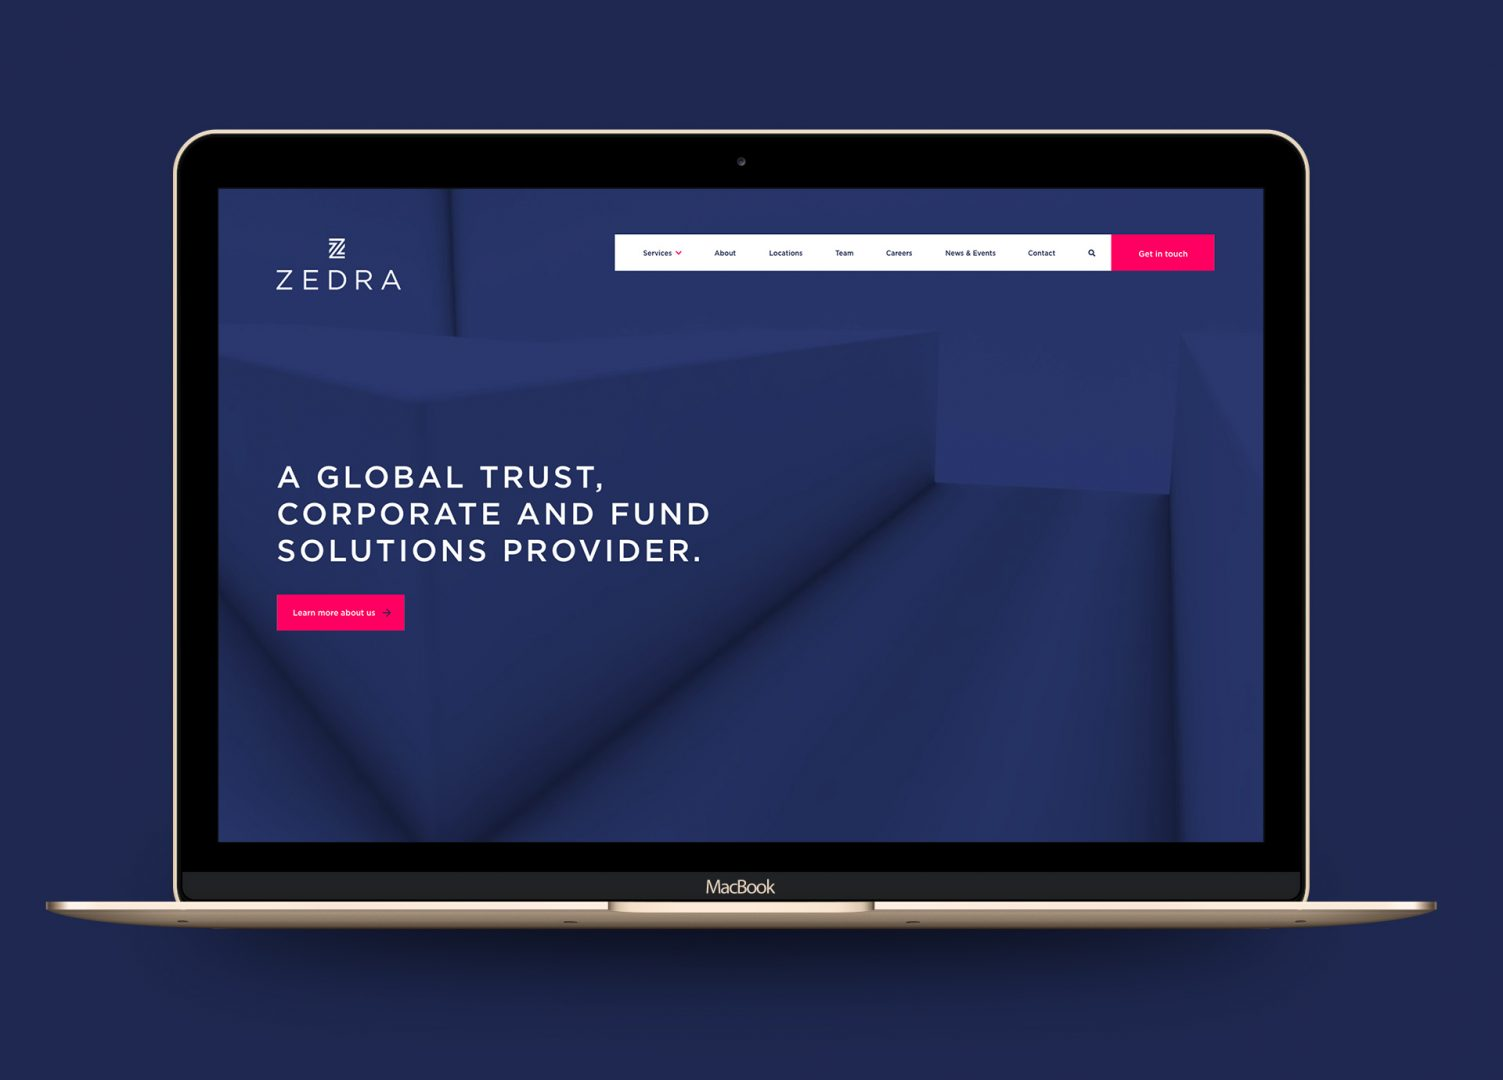 Zedra-homepage-macbook